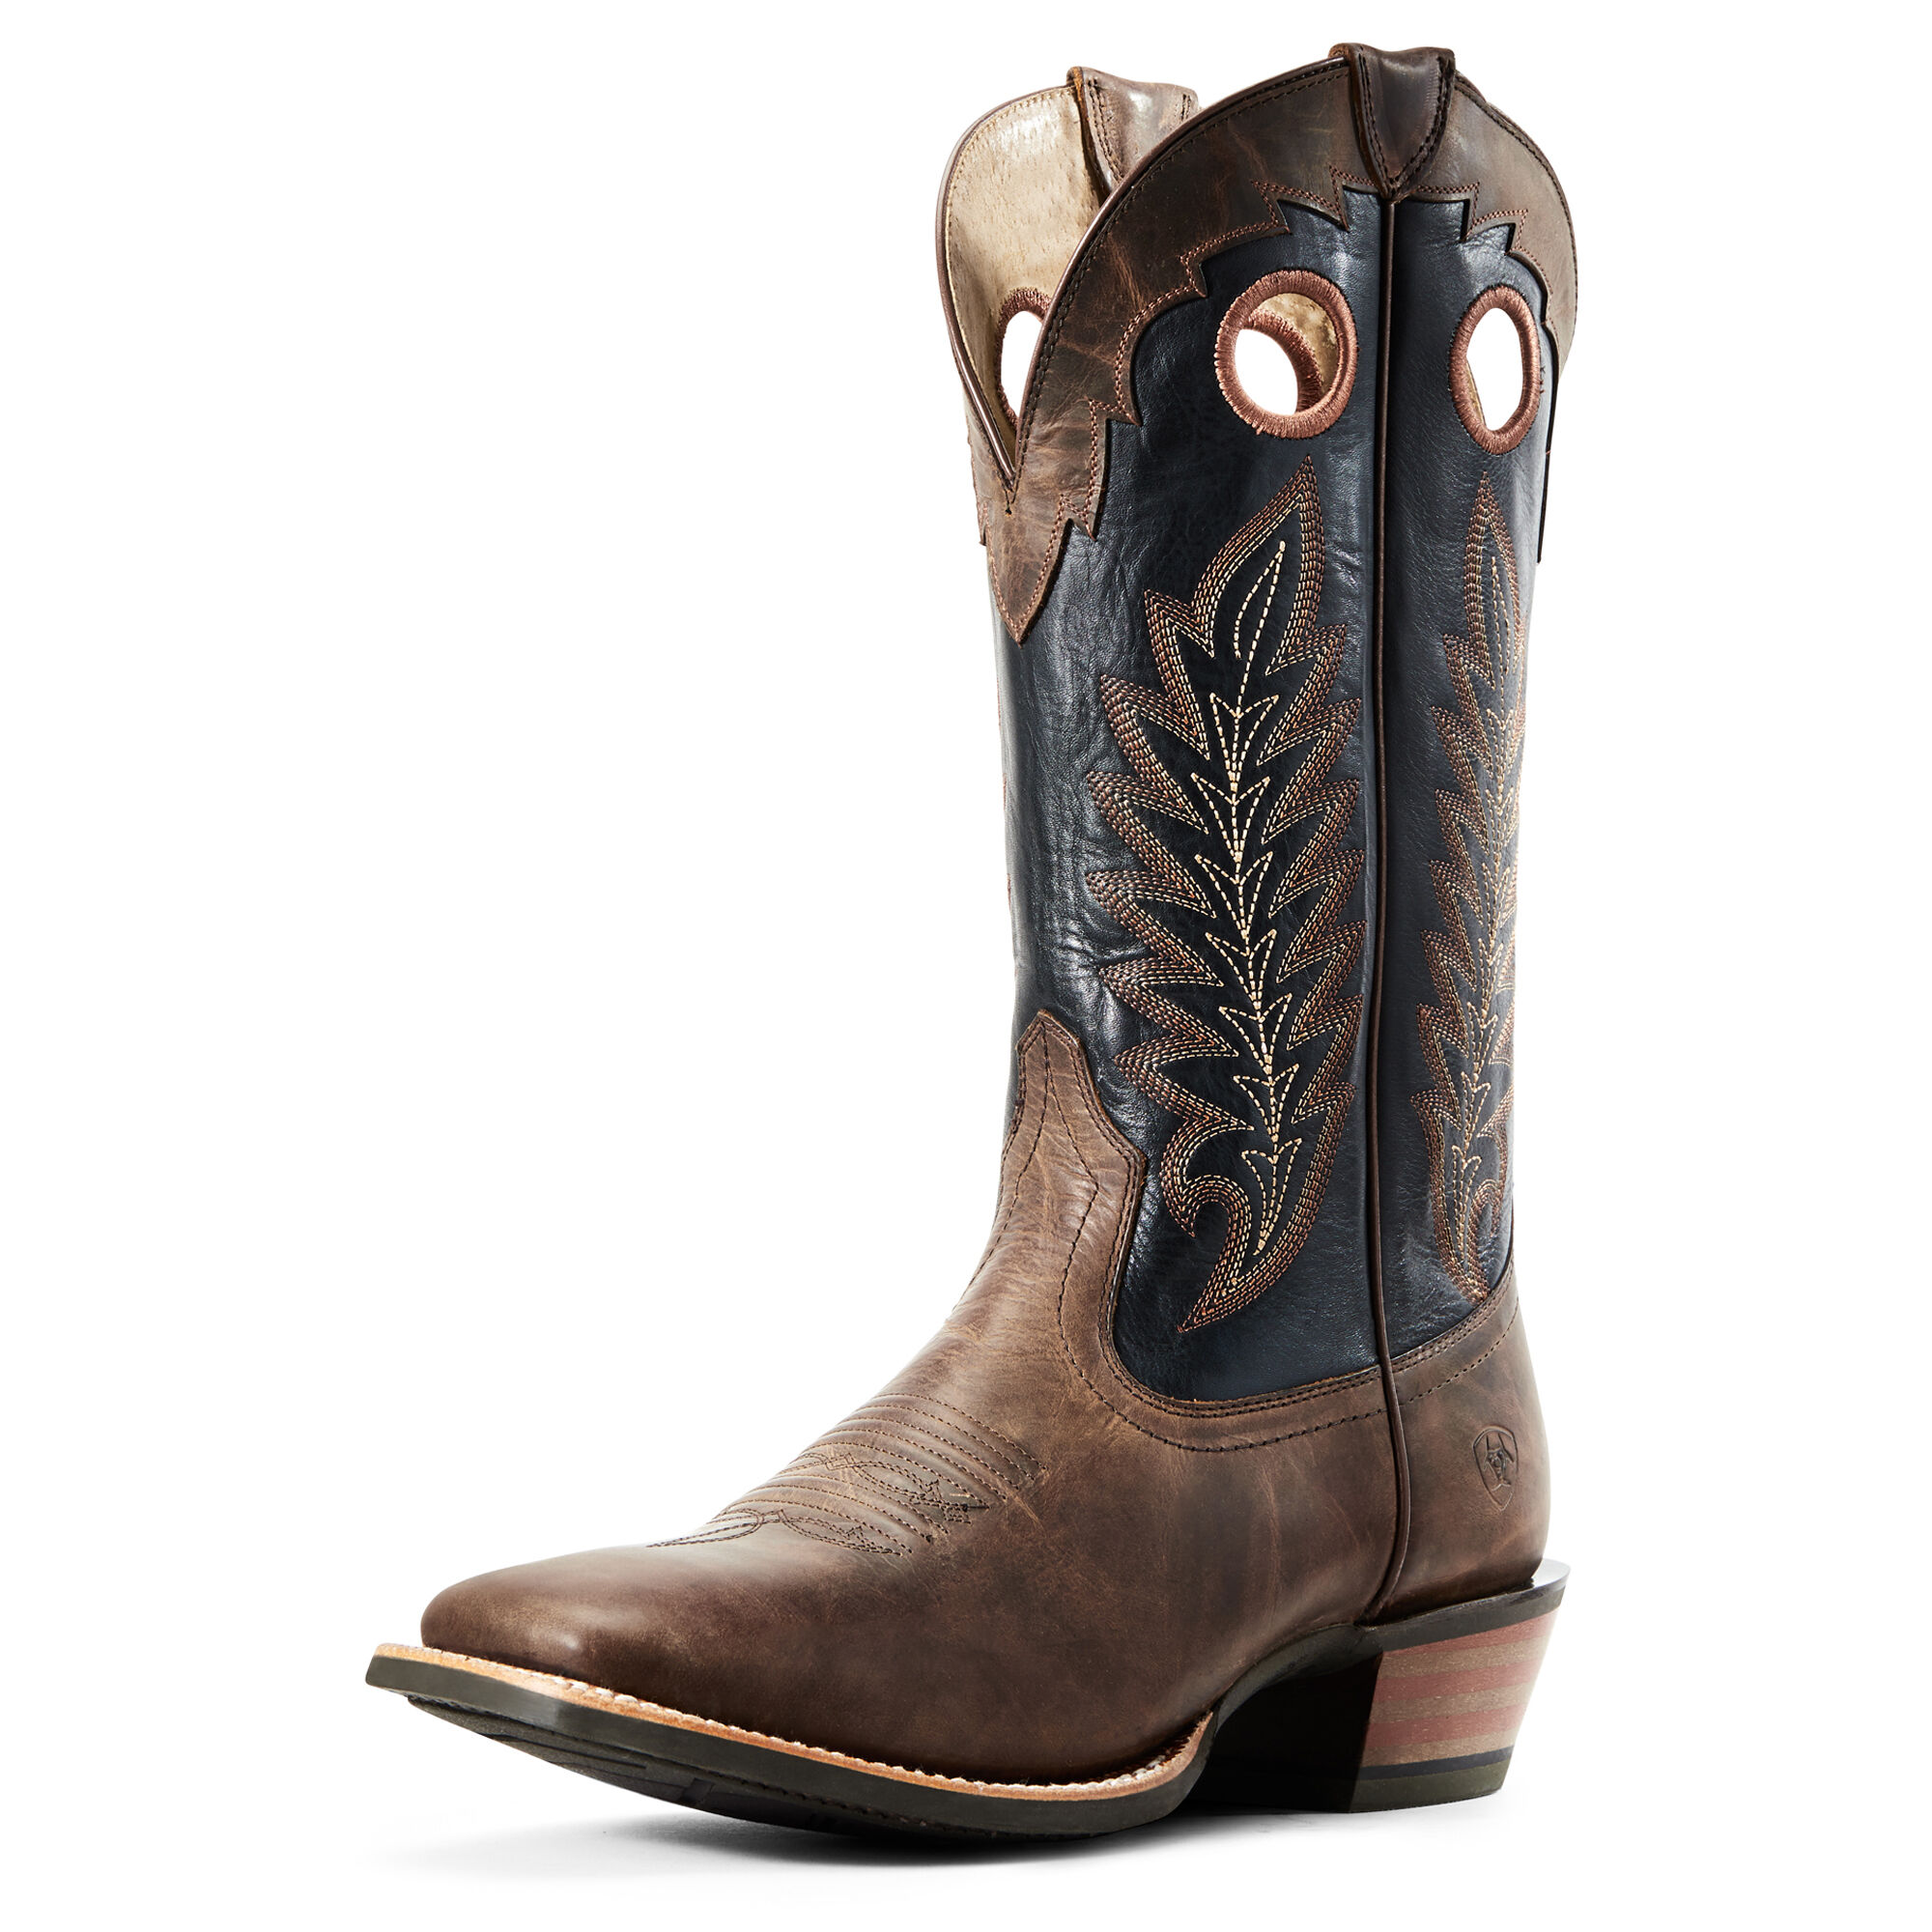 Real Deal Western Boot   Ariat